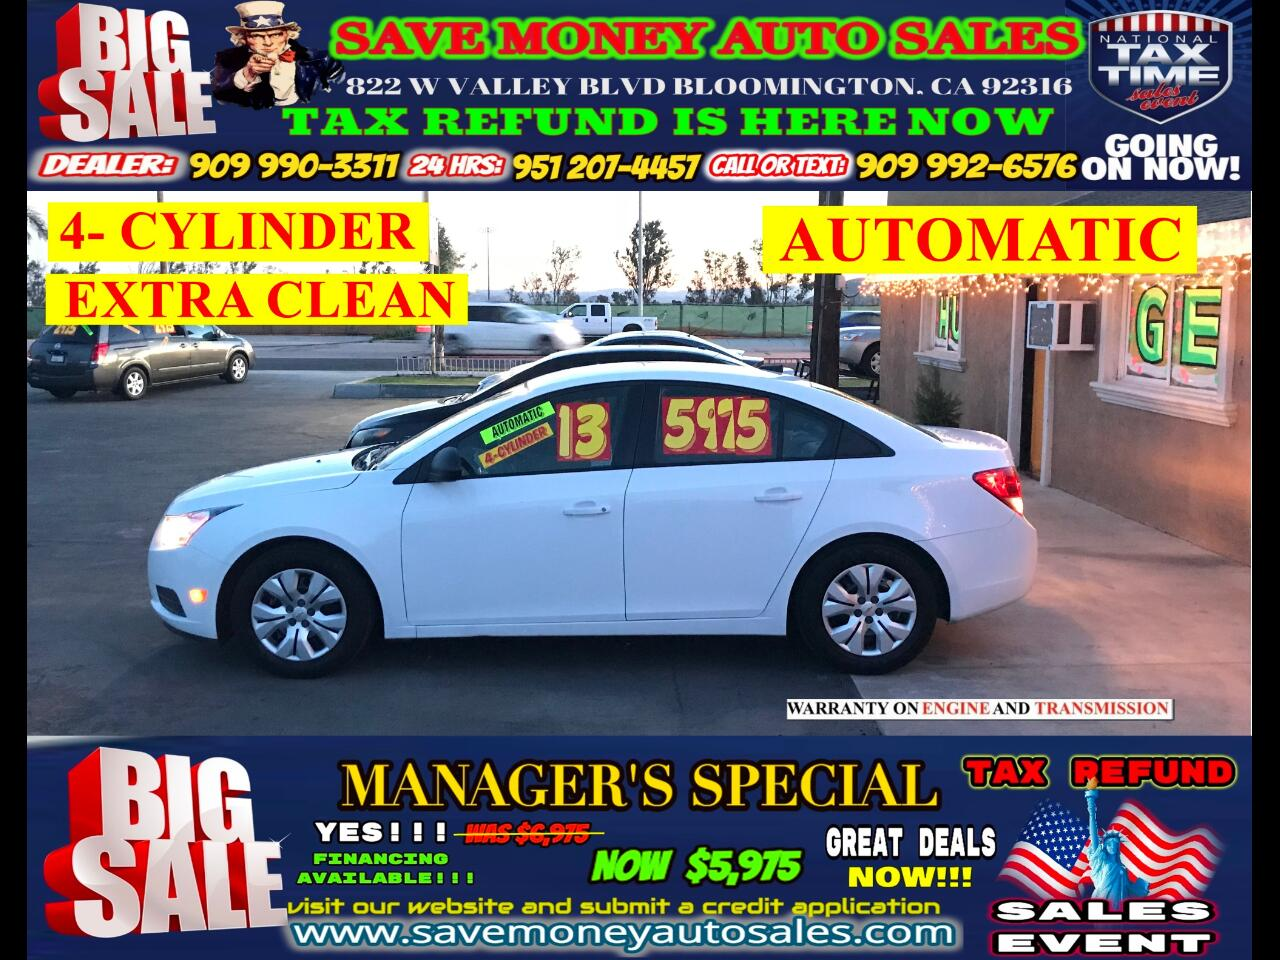 2013 Chevrolet Cruze LS>4- CYLINDER>EXTRA CLEAN>INTEGRATED PHONE>